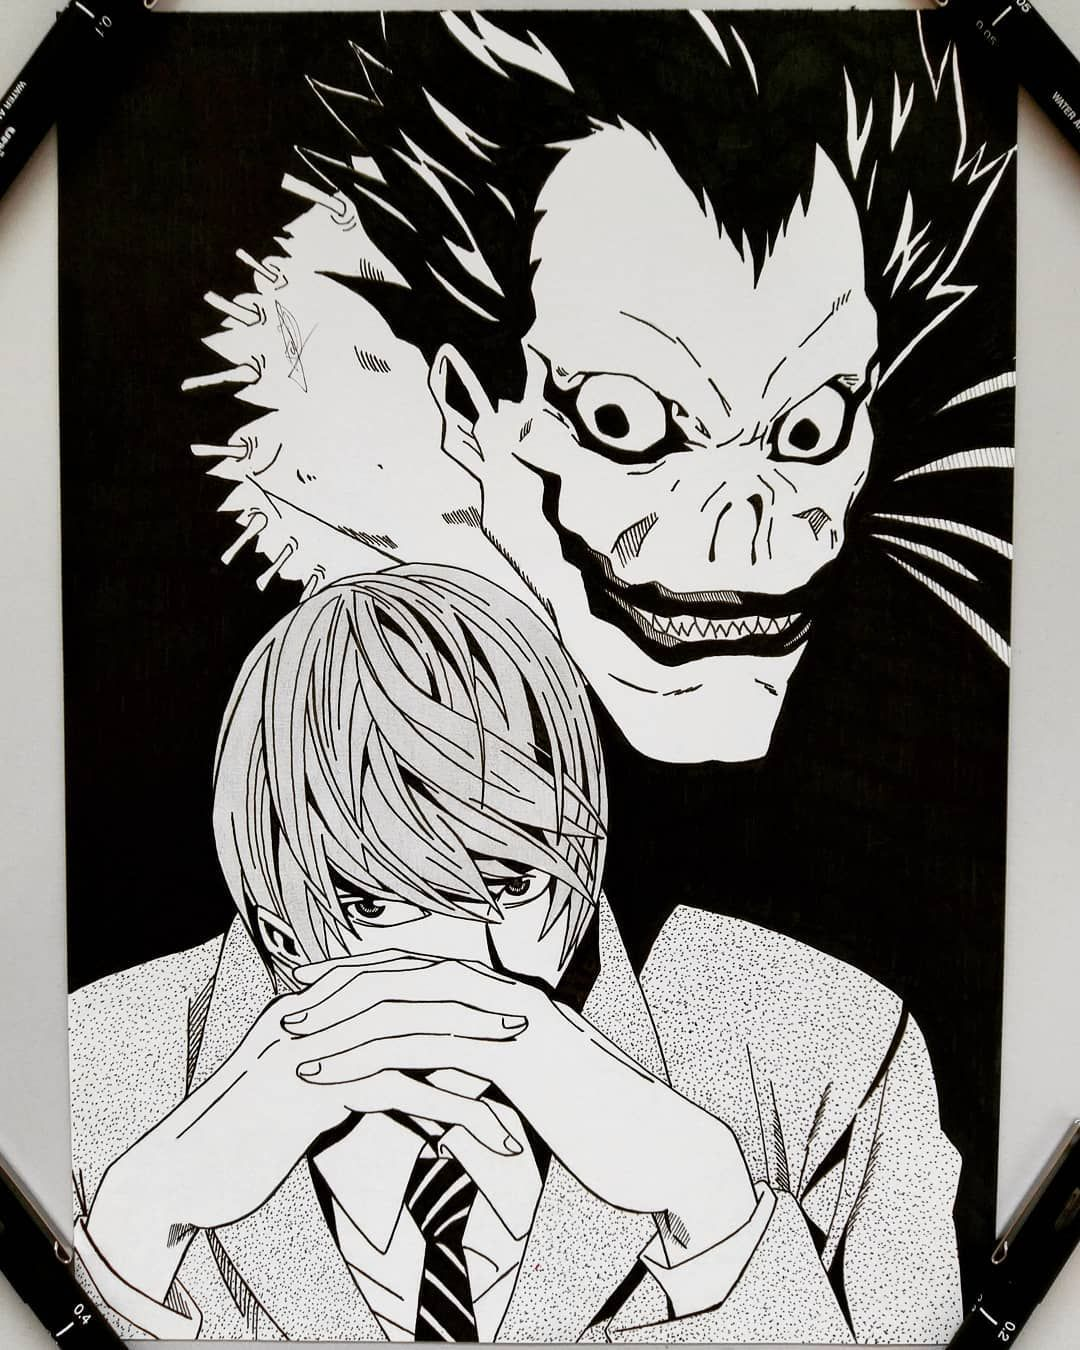 Deathnote Lightyagami Ryuk Ilustration Lineart Draws Theanimeigfeature Allartsharing Animeartcollective Anime Sketches25 In 2020 Sketches Drawings Death Note